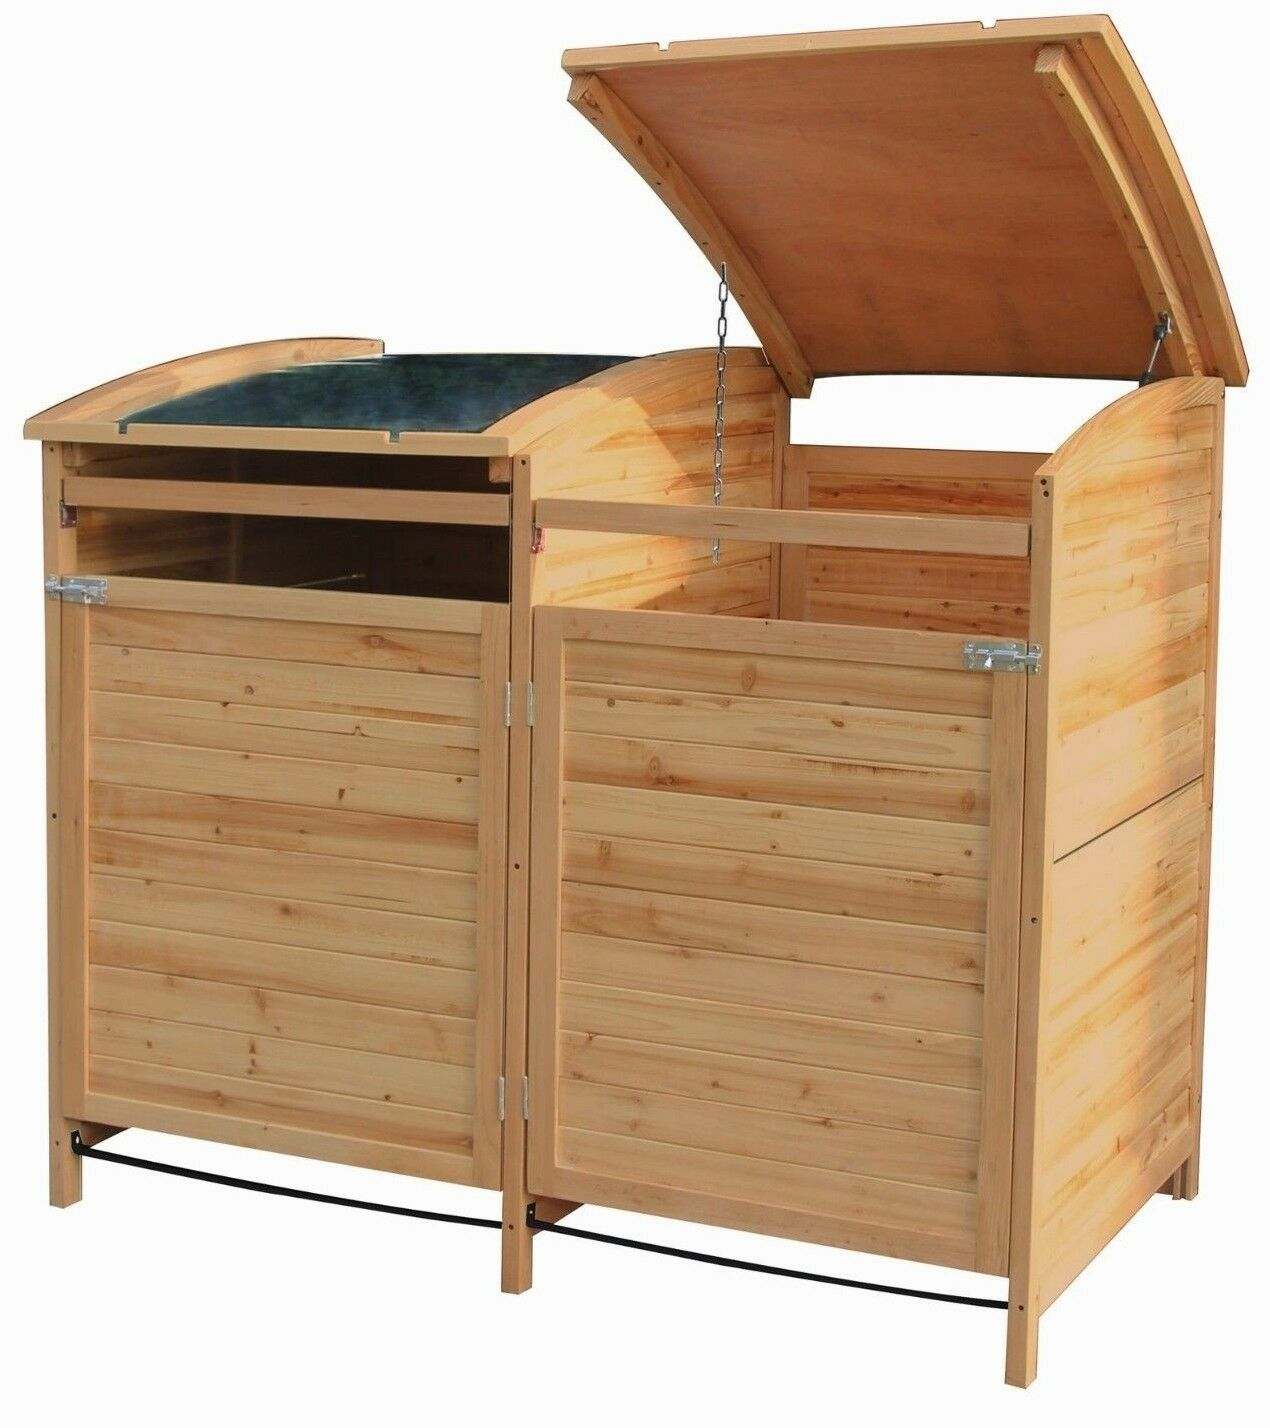 m lltonnenbox holz 240 l gartenbox m lltonnenverkleidung. Black Bedroom Furniture Sets. Home Design Ideas